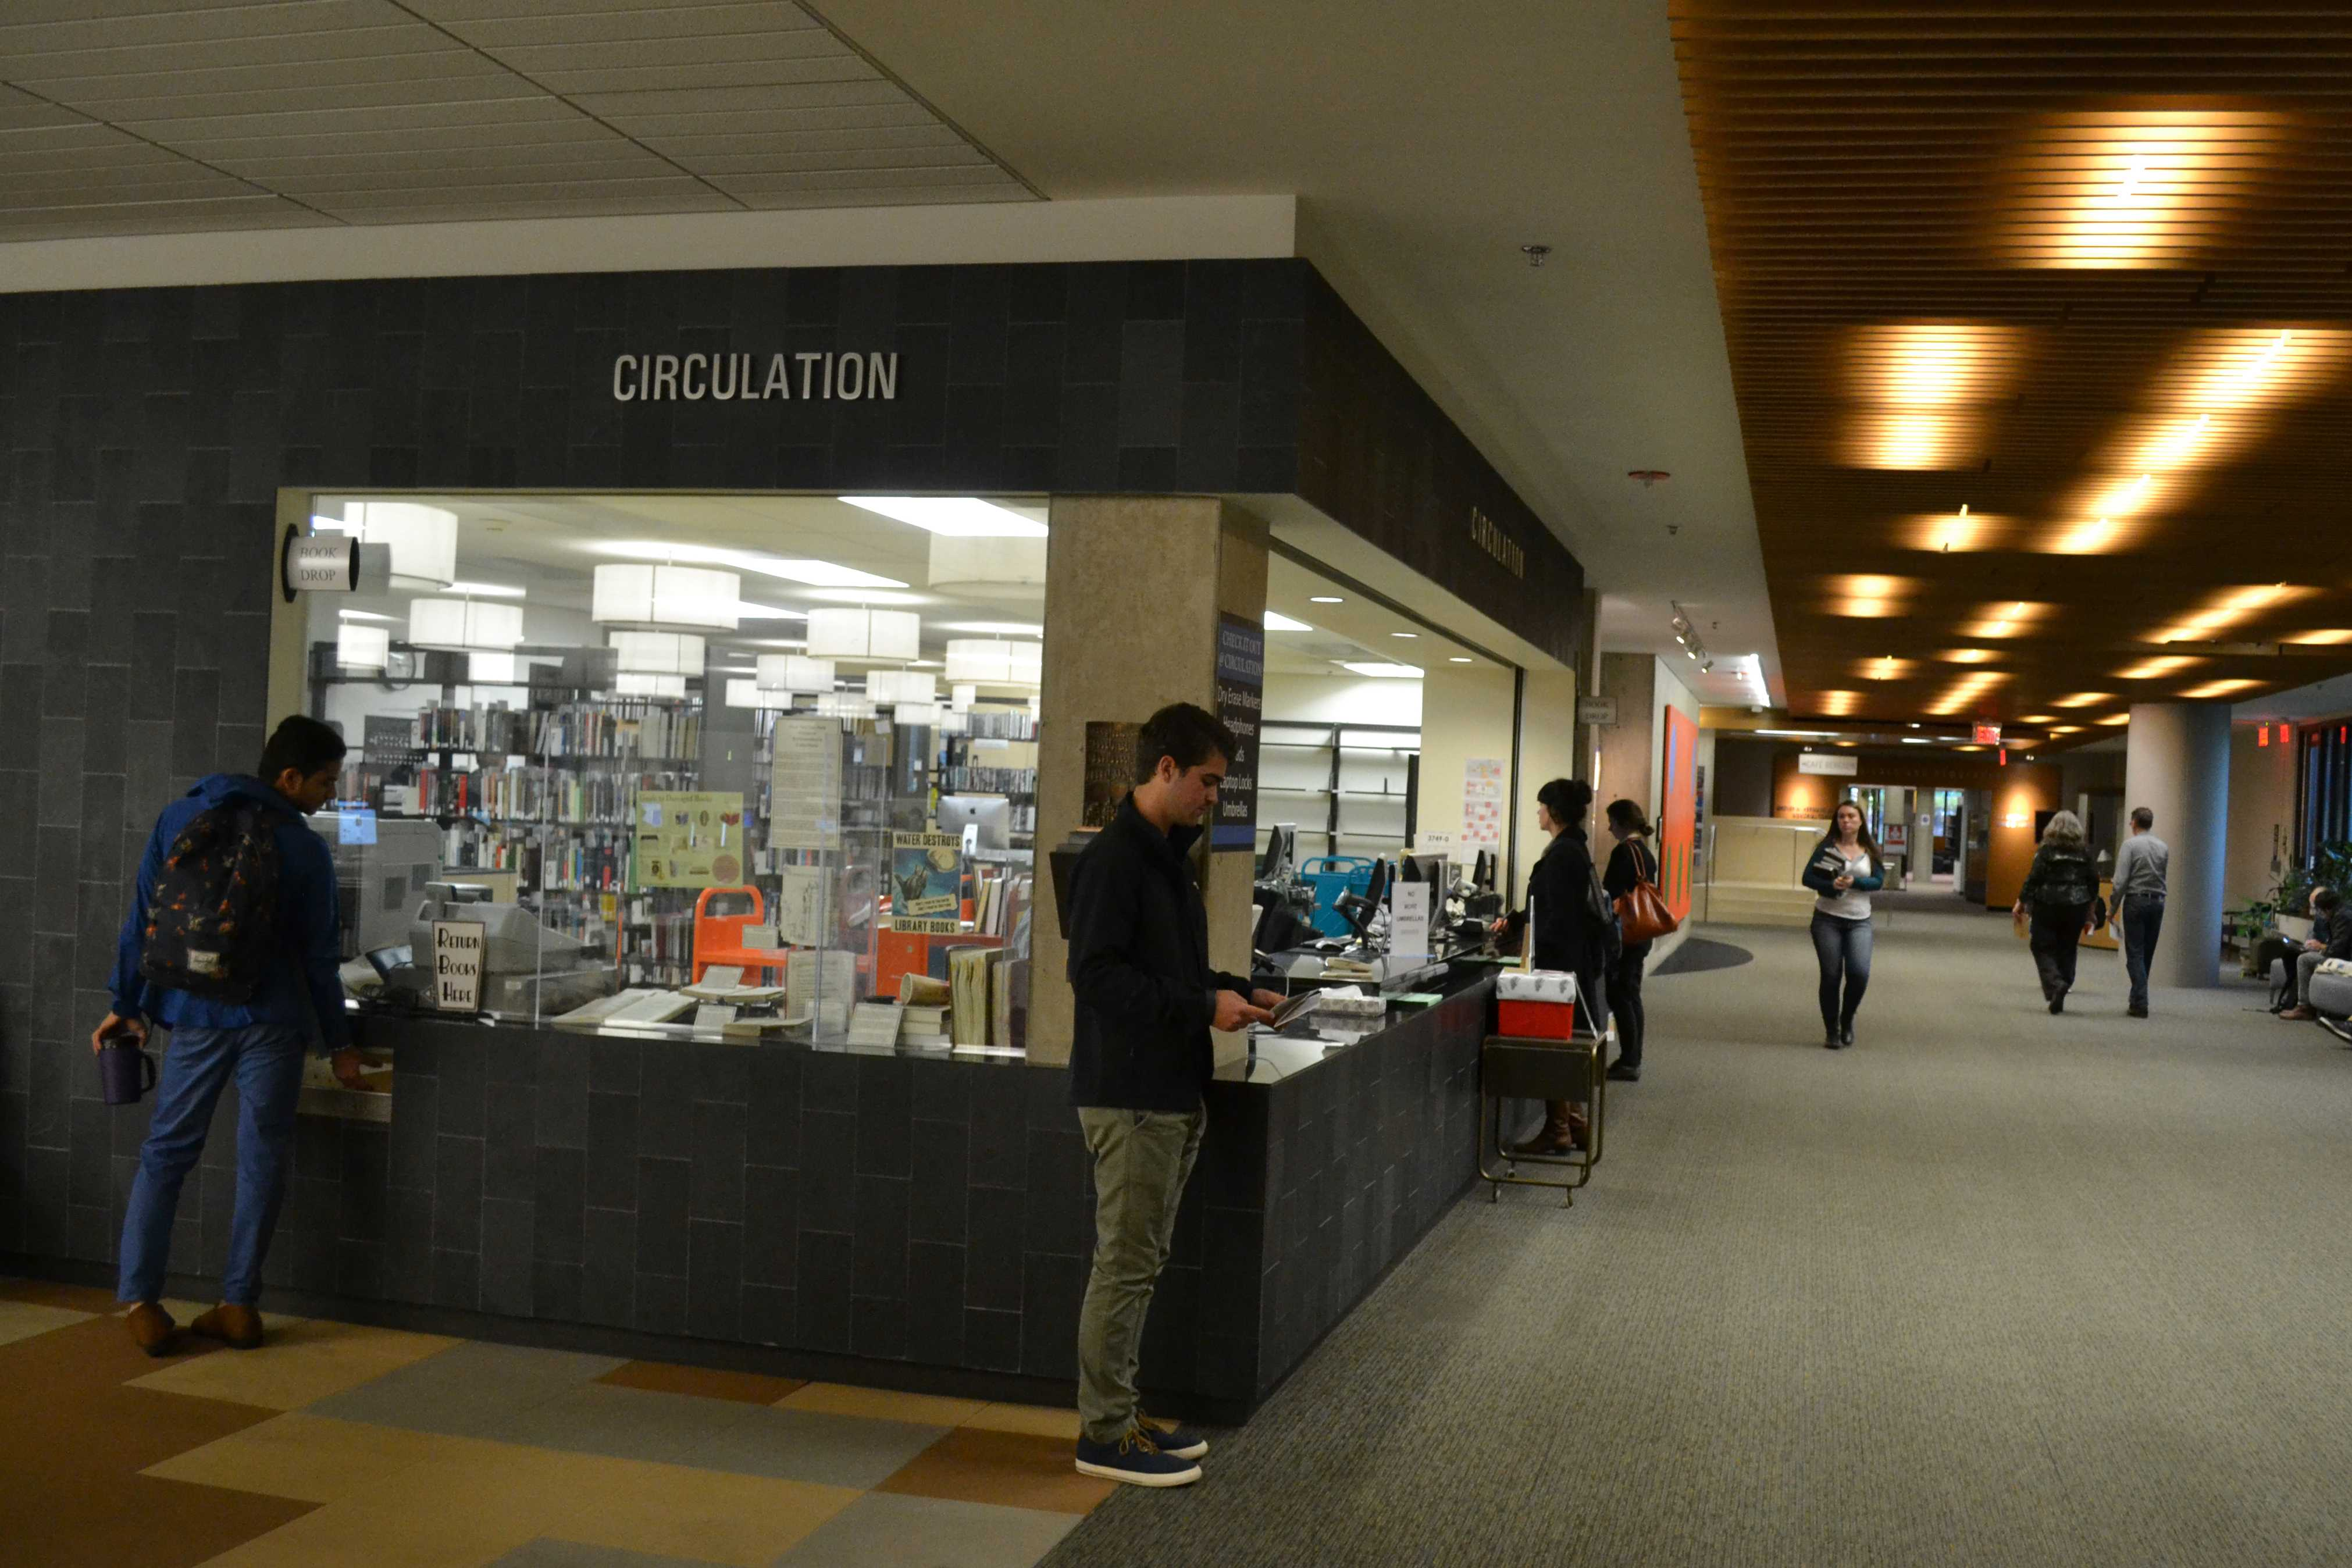 Video production equipment can now be borrowed by undergraduate students from the circulation desk in University Library. Library administrators decided to expand their borrowing services after the service desk in Digital Collections was closed.